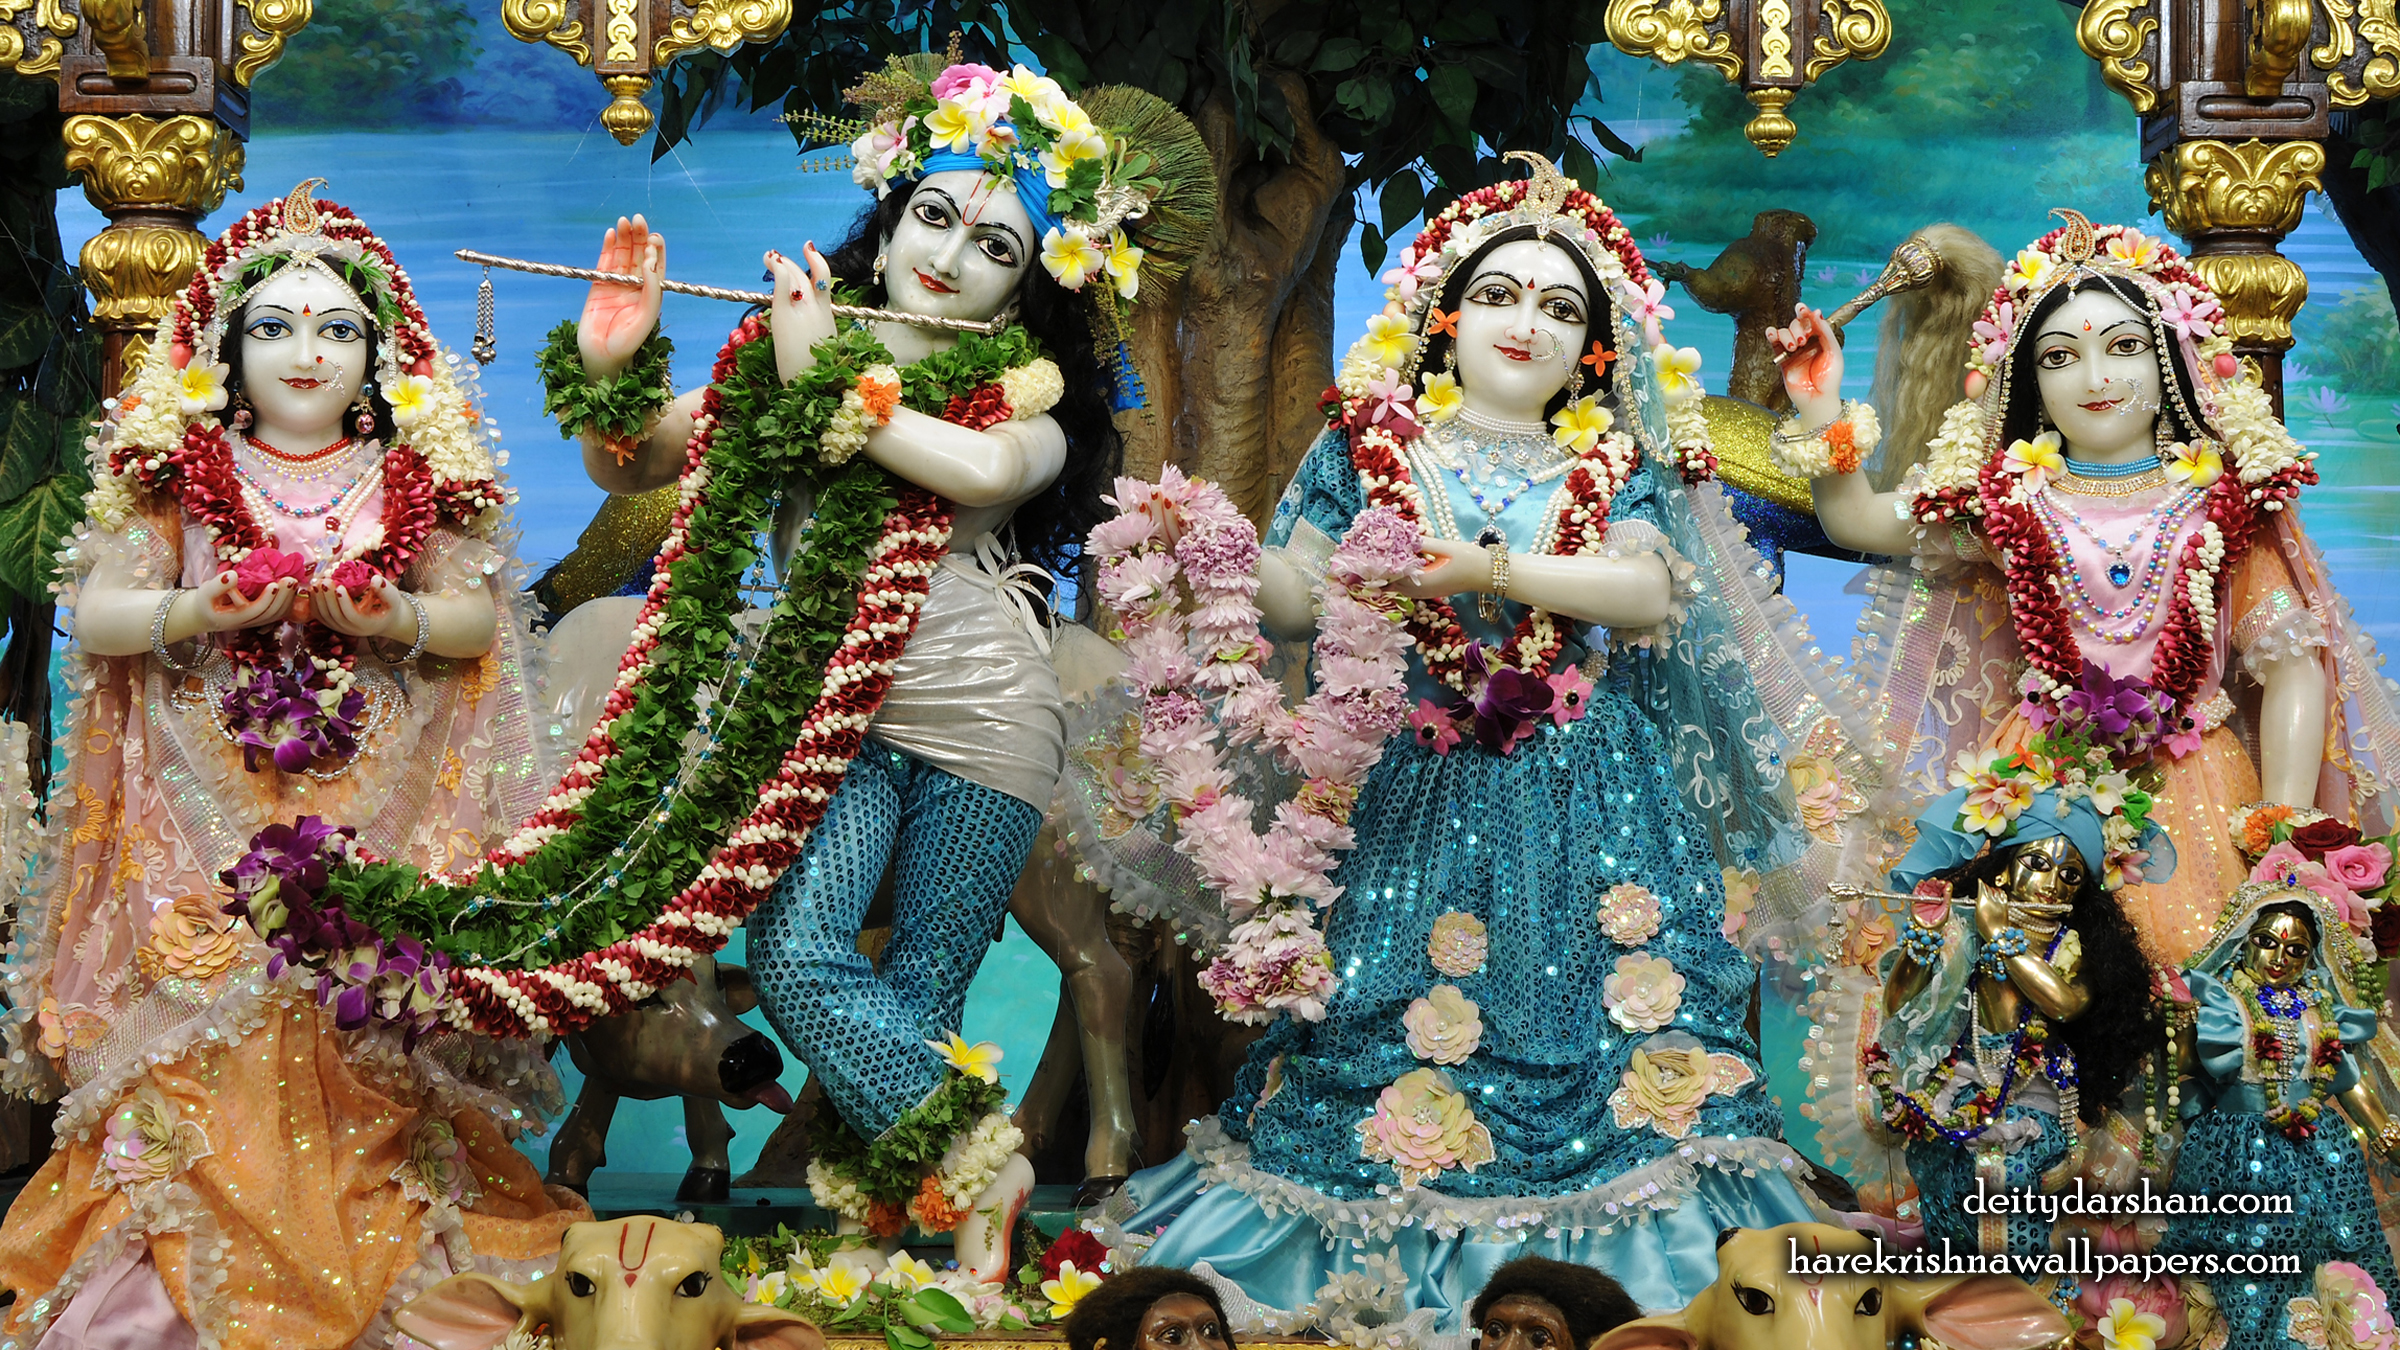 Sri Sri Radha Gopinath Lalita Vishakha Wallpaper (074) Size 2400x1350 Download